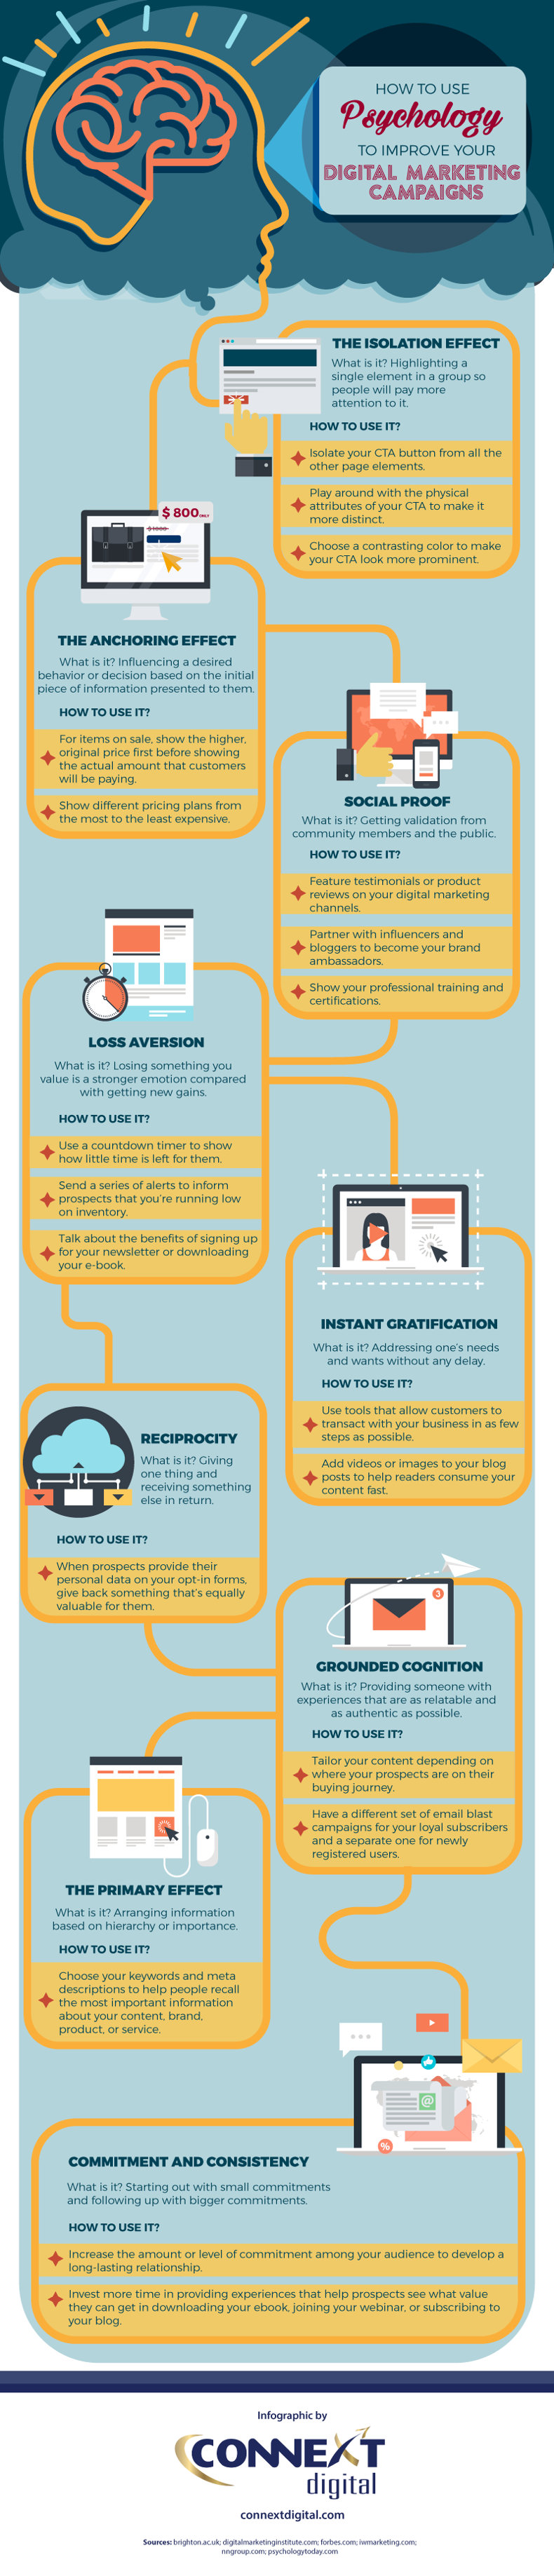 181105 infographic psychology in digital marketing